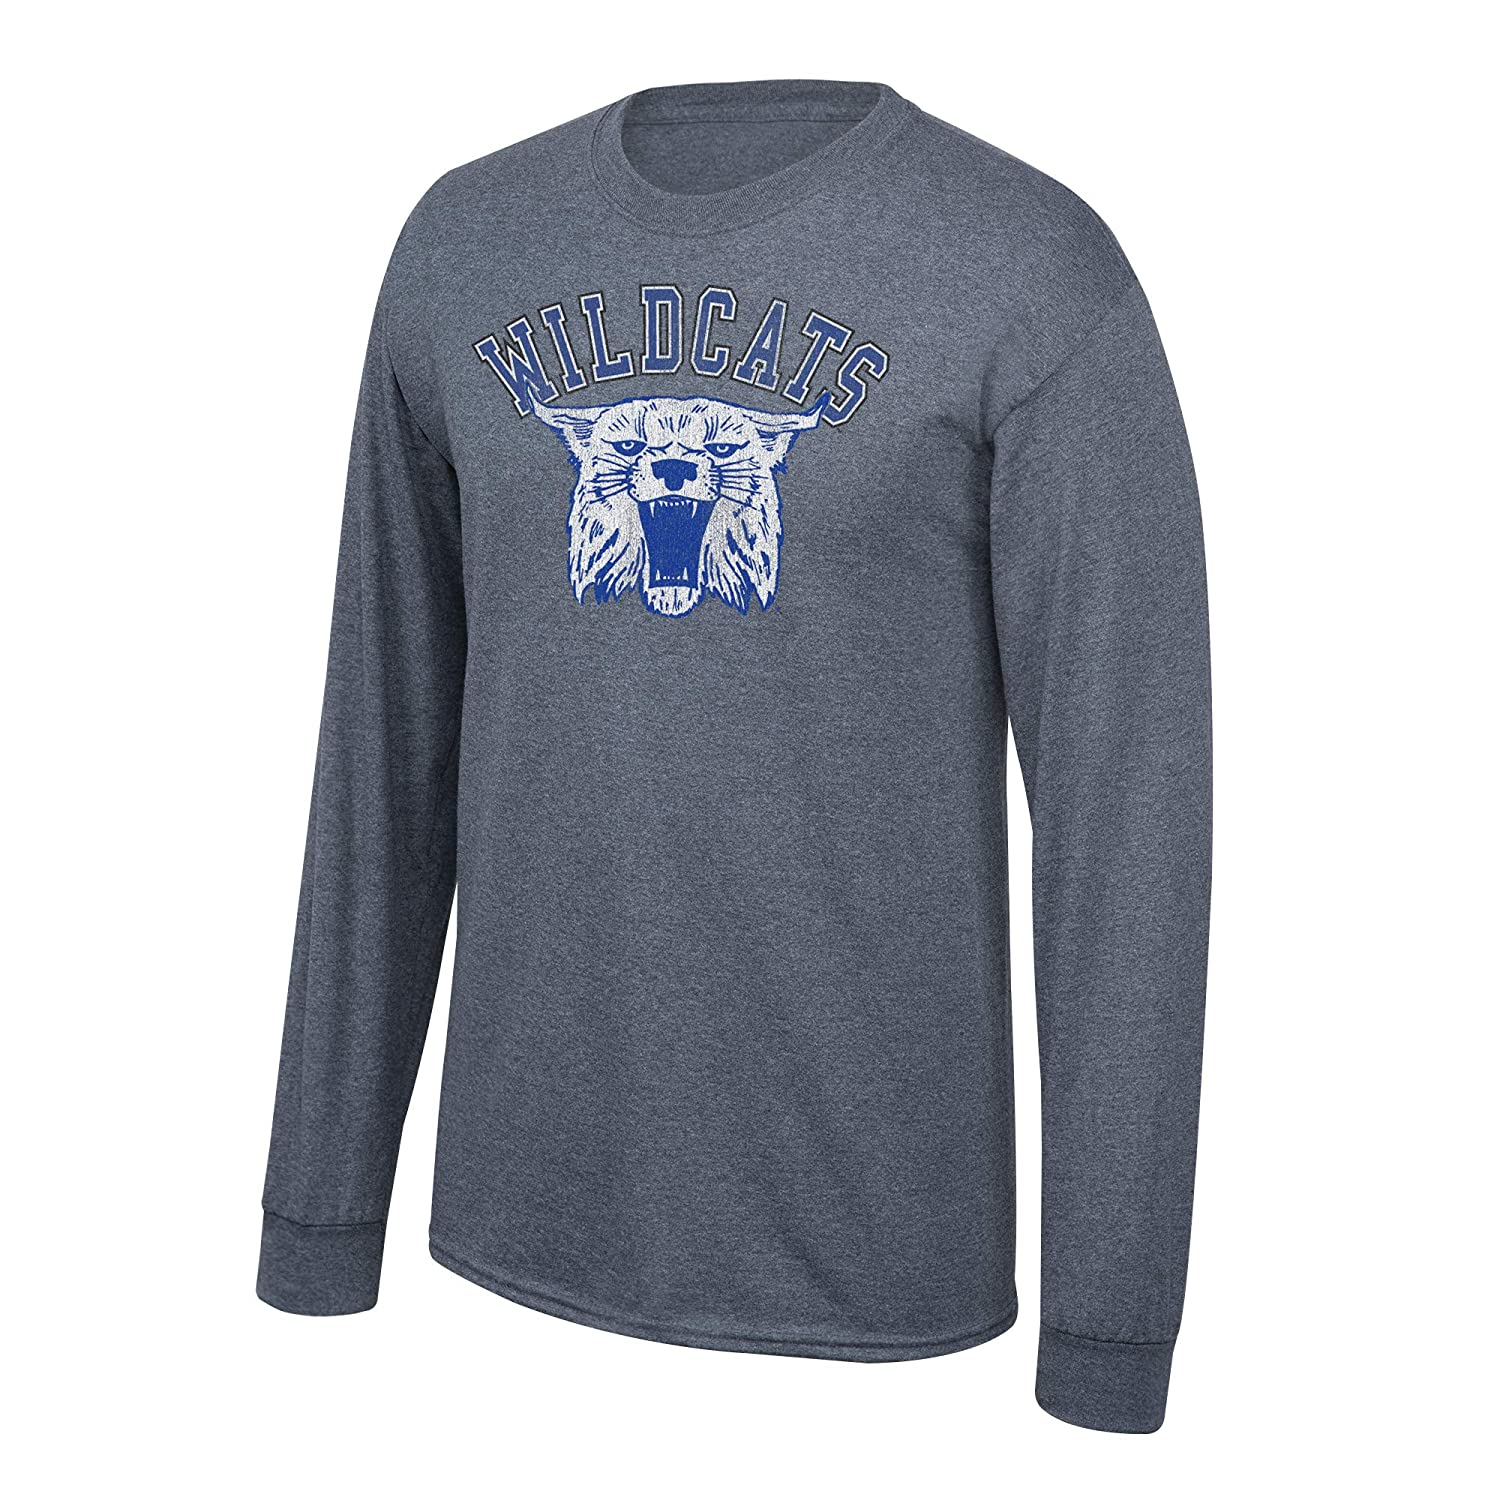 Elite Fan Shop NCAA Mens Kentucky Wildcats Long Sleeve T Shirt Charcoal Vintage Kentucky Wildcats Charcoal Large